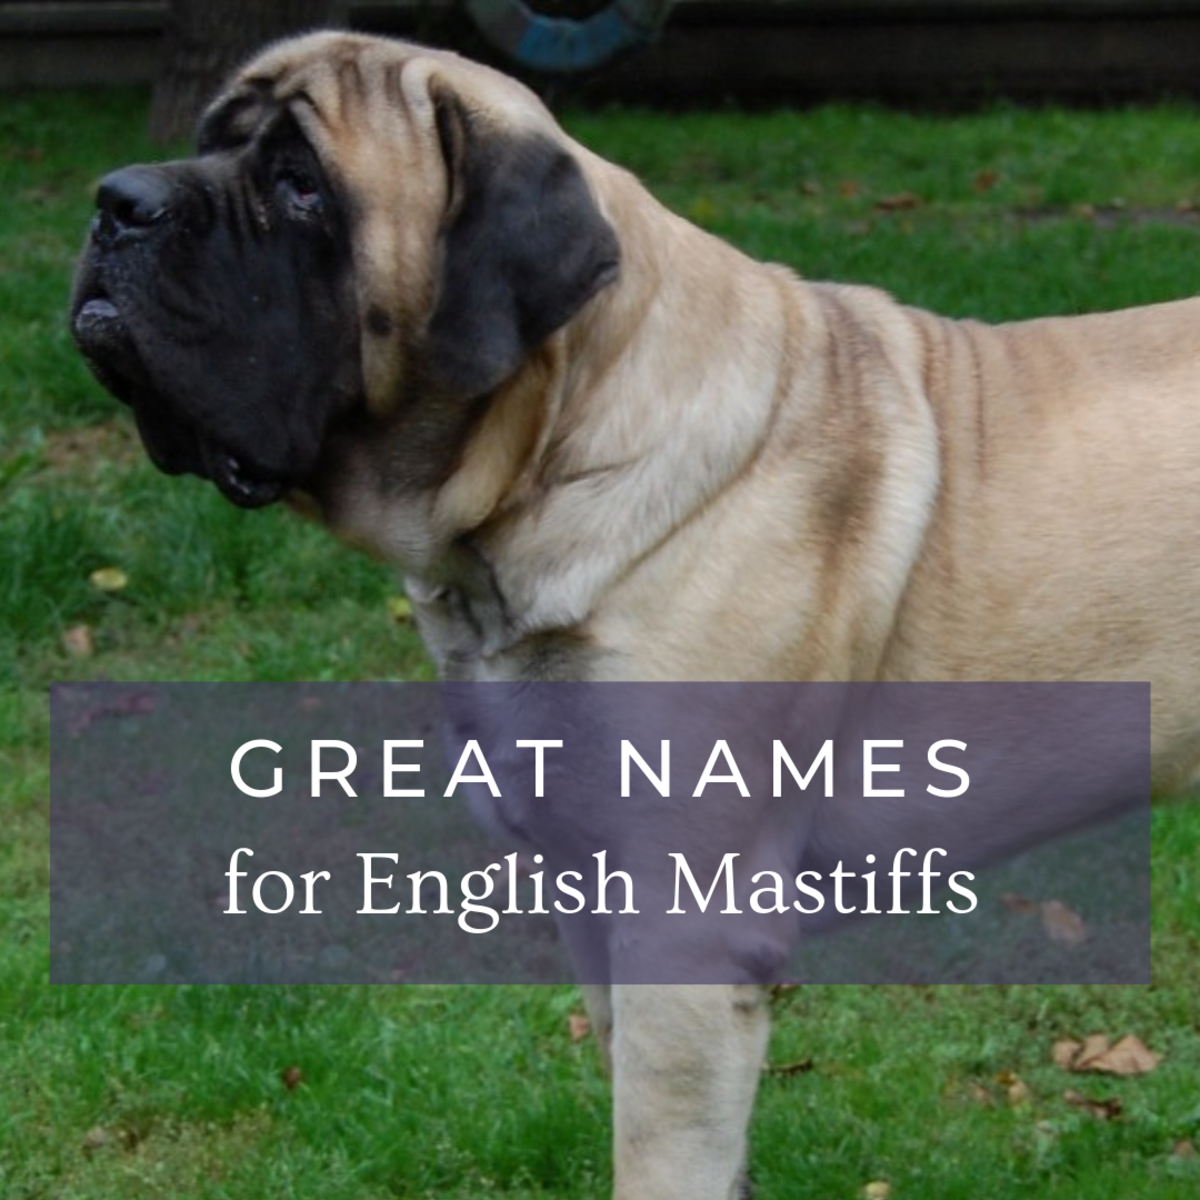 Names for English Mastiffs